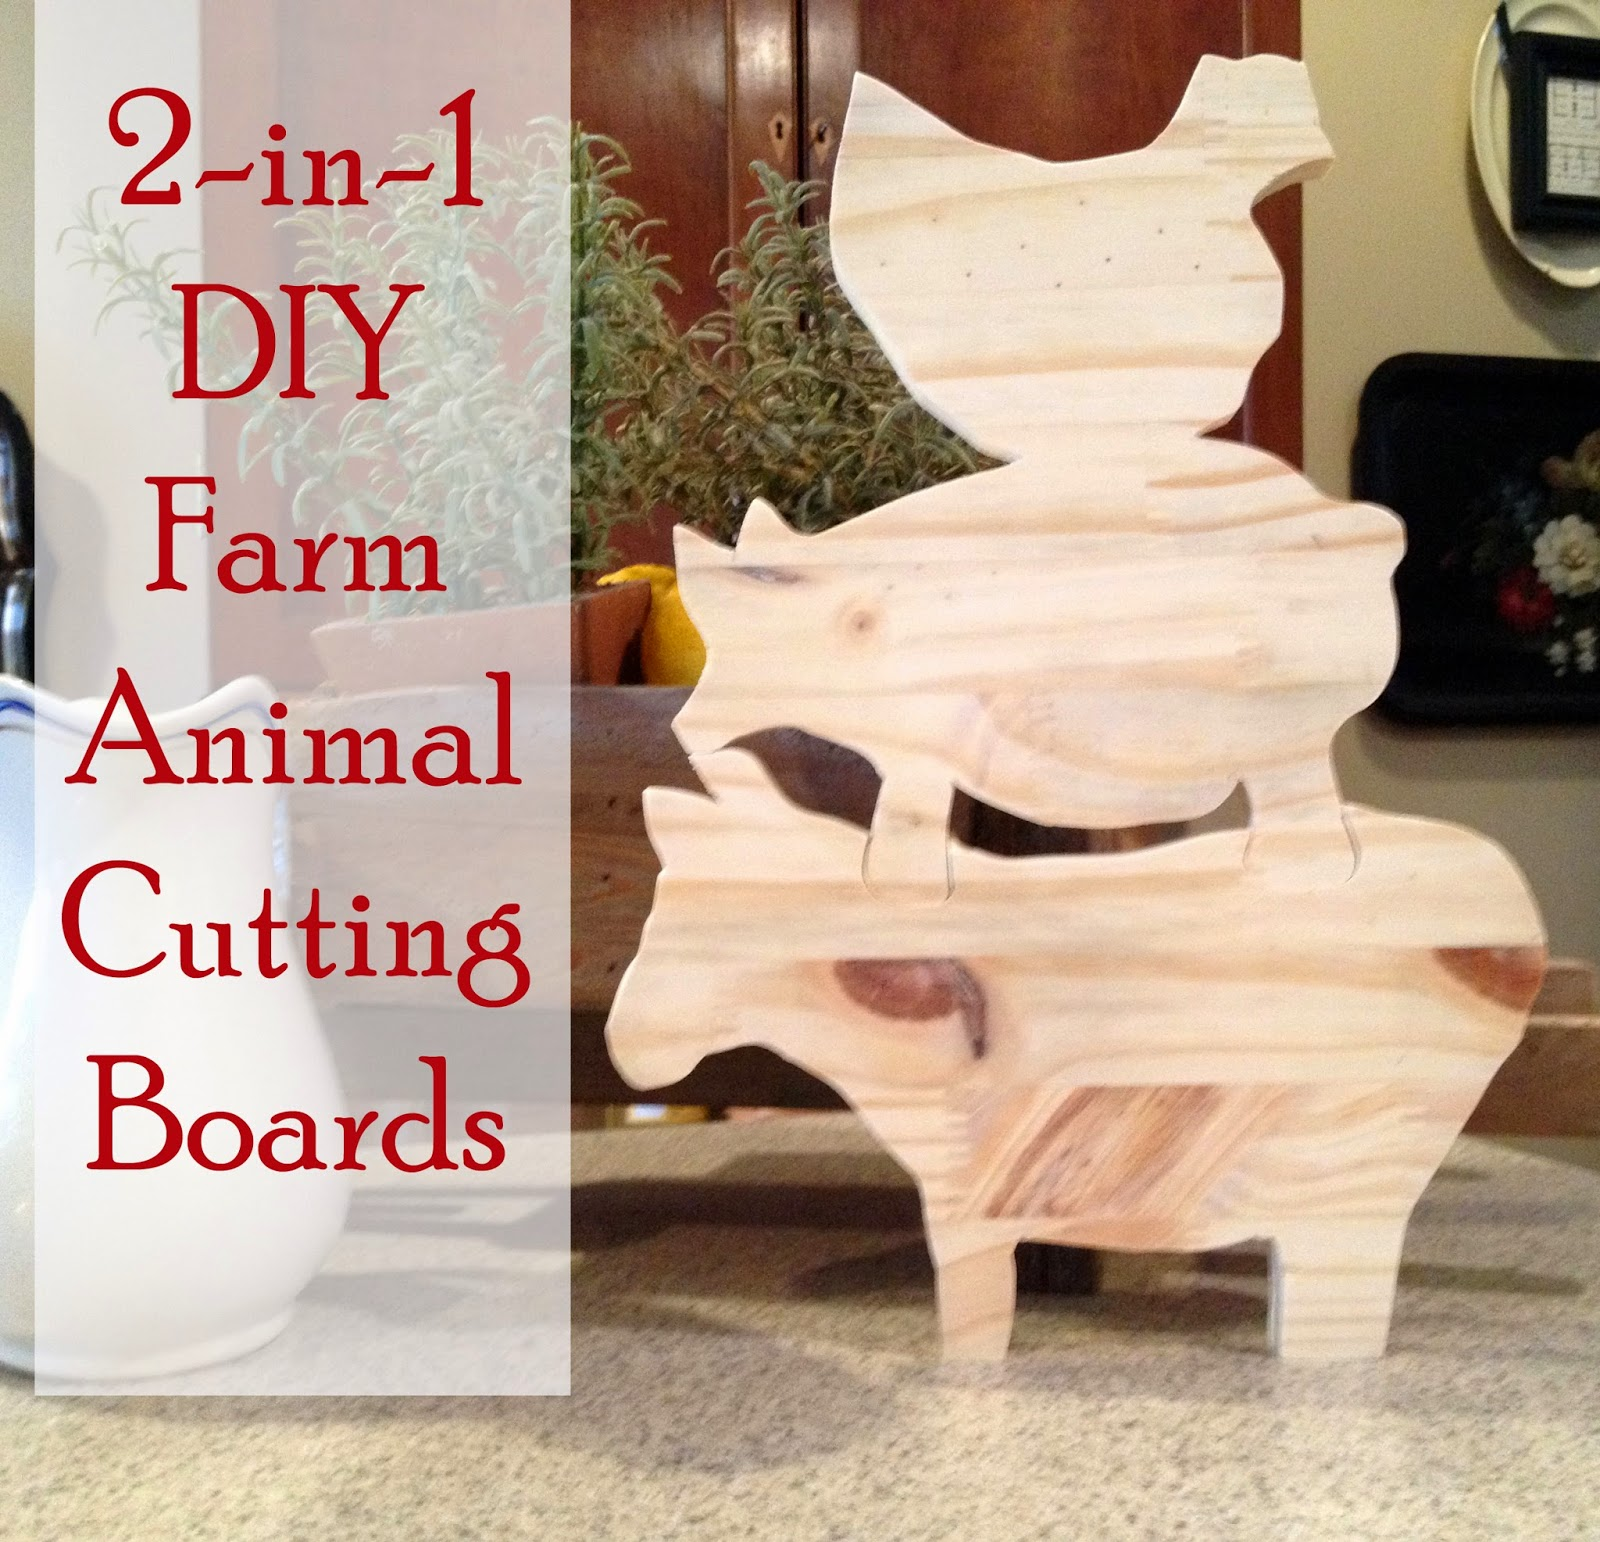 easy 2-in-1 farm animal cutting board